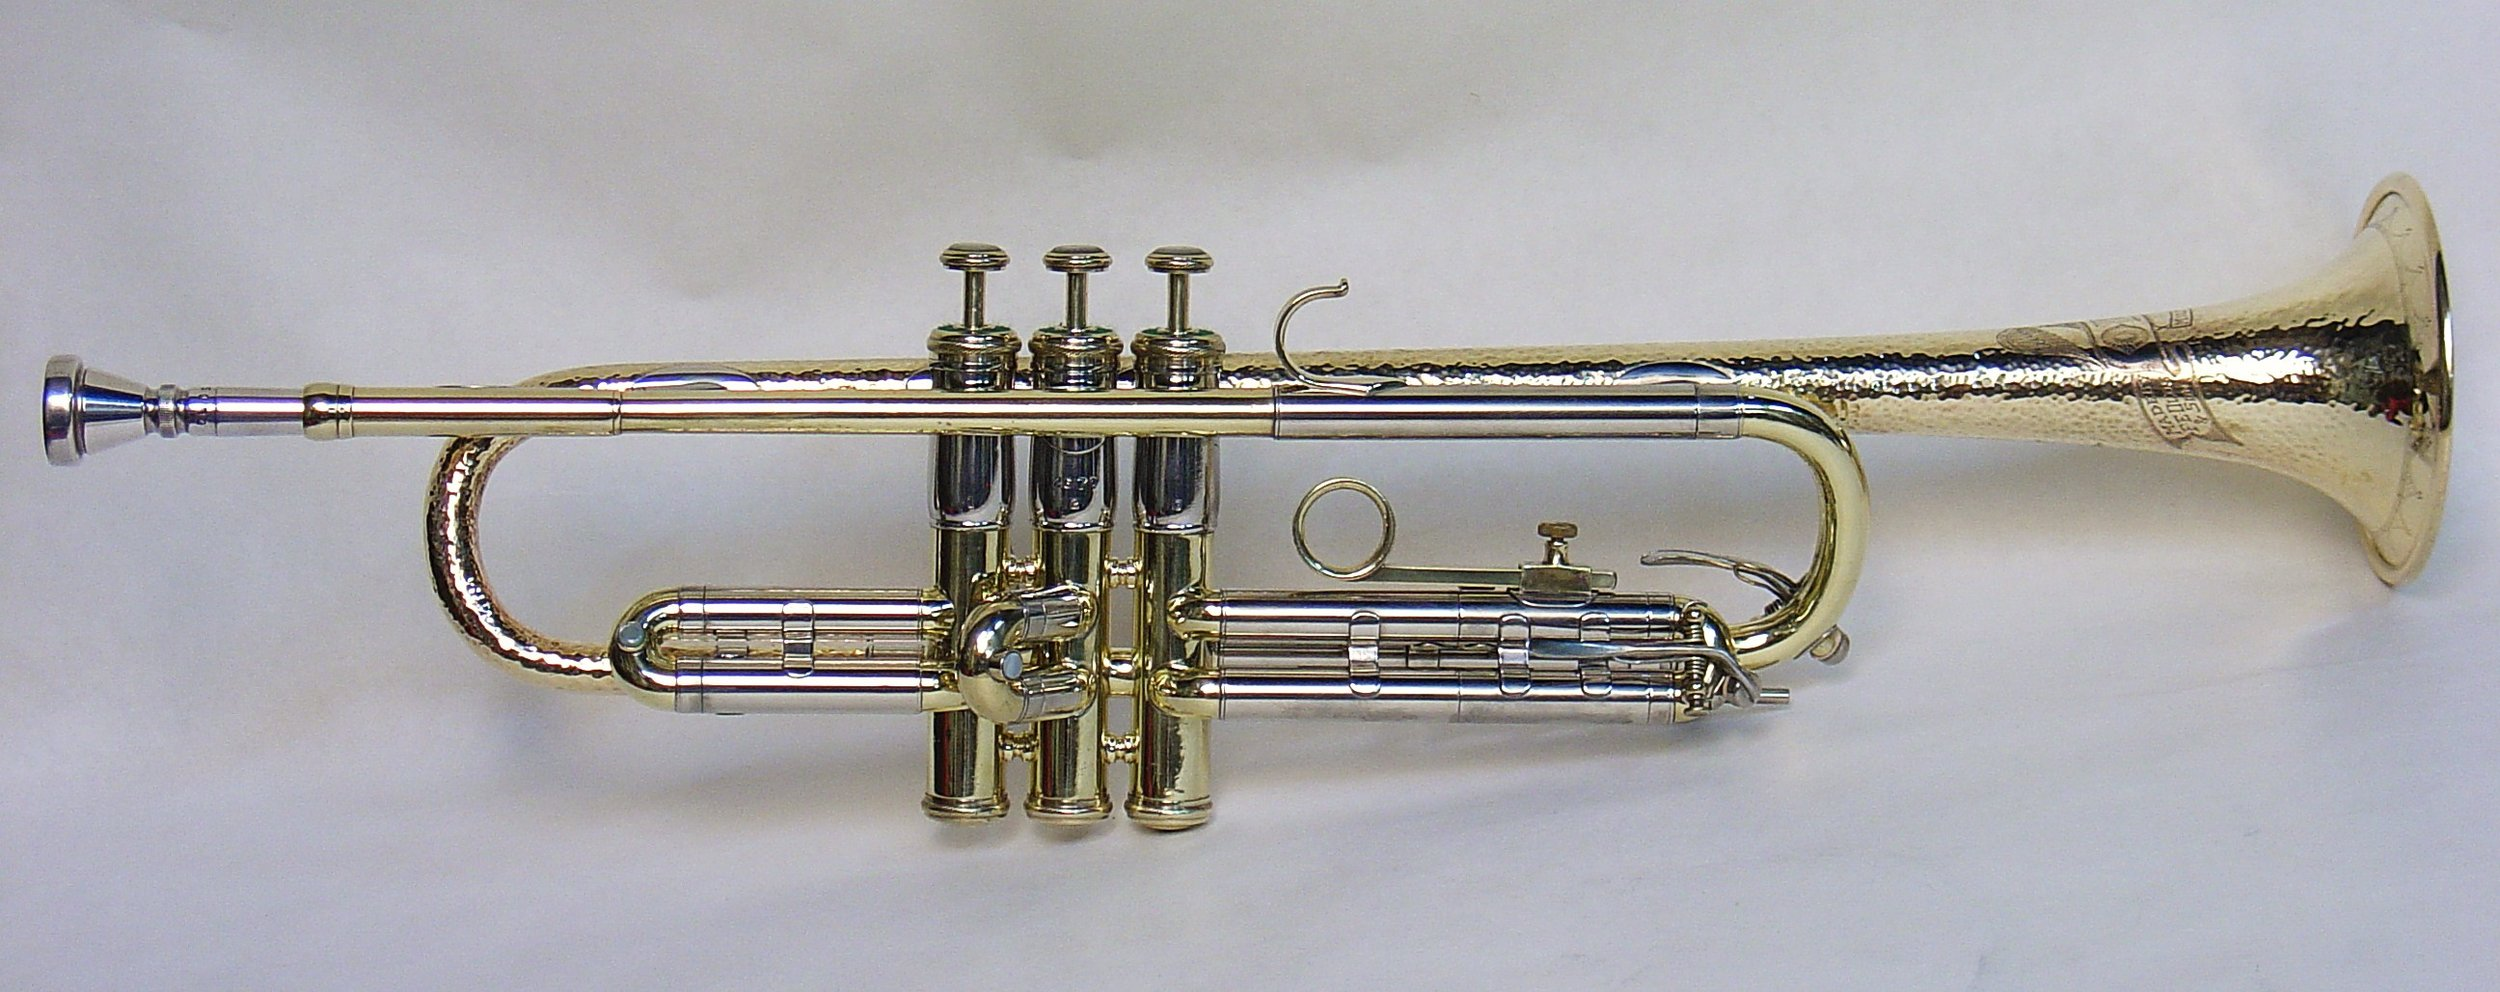 Military Model Trumpets